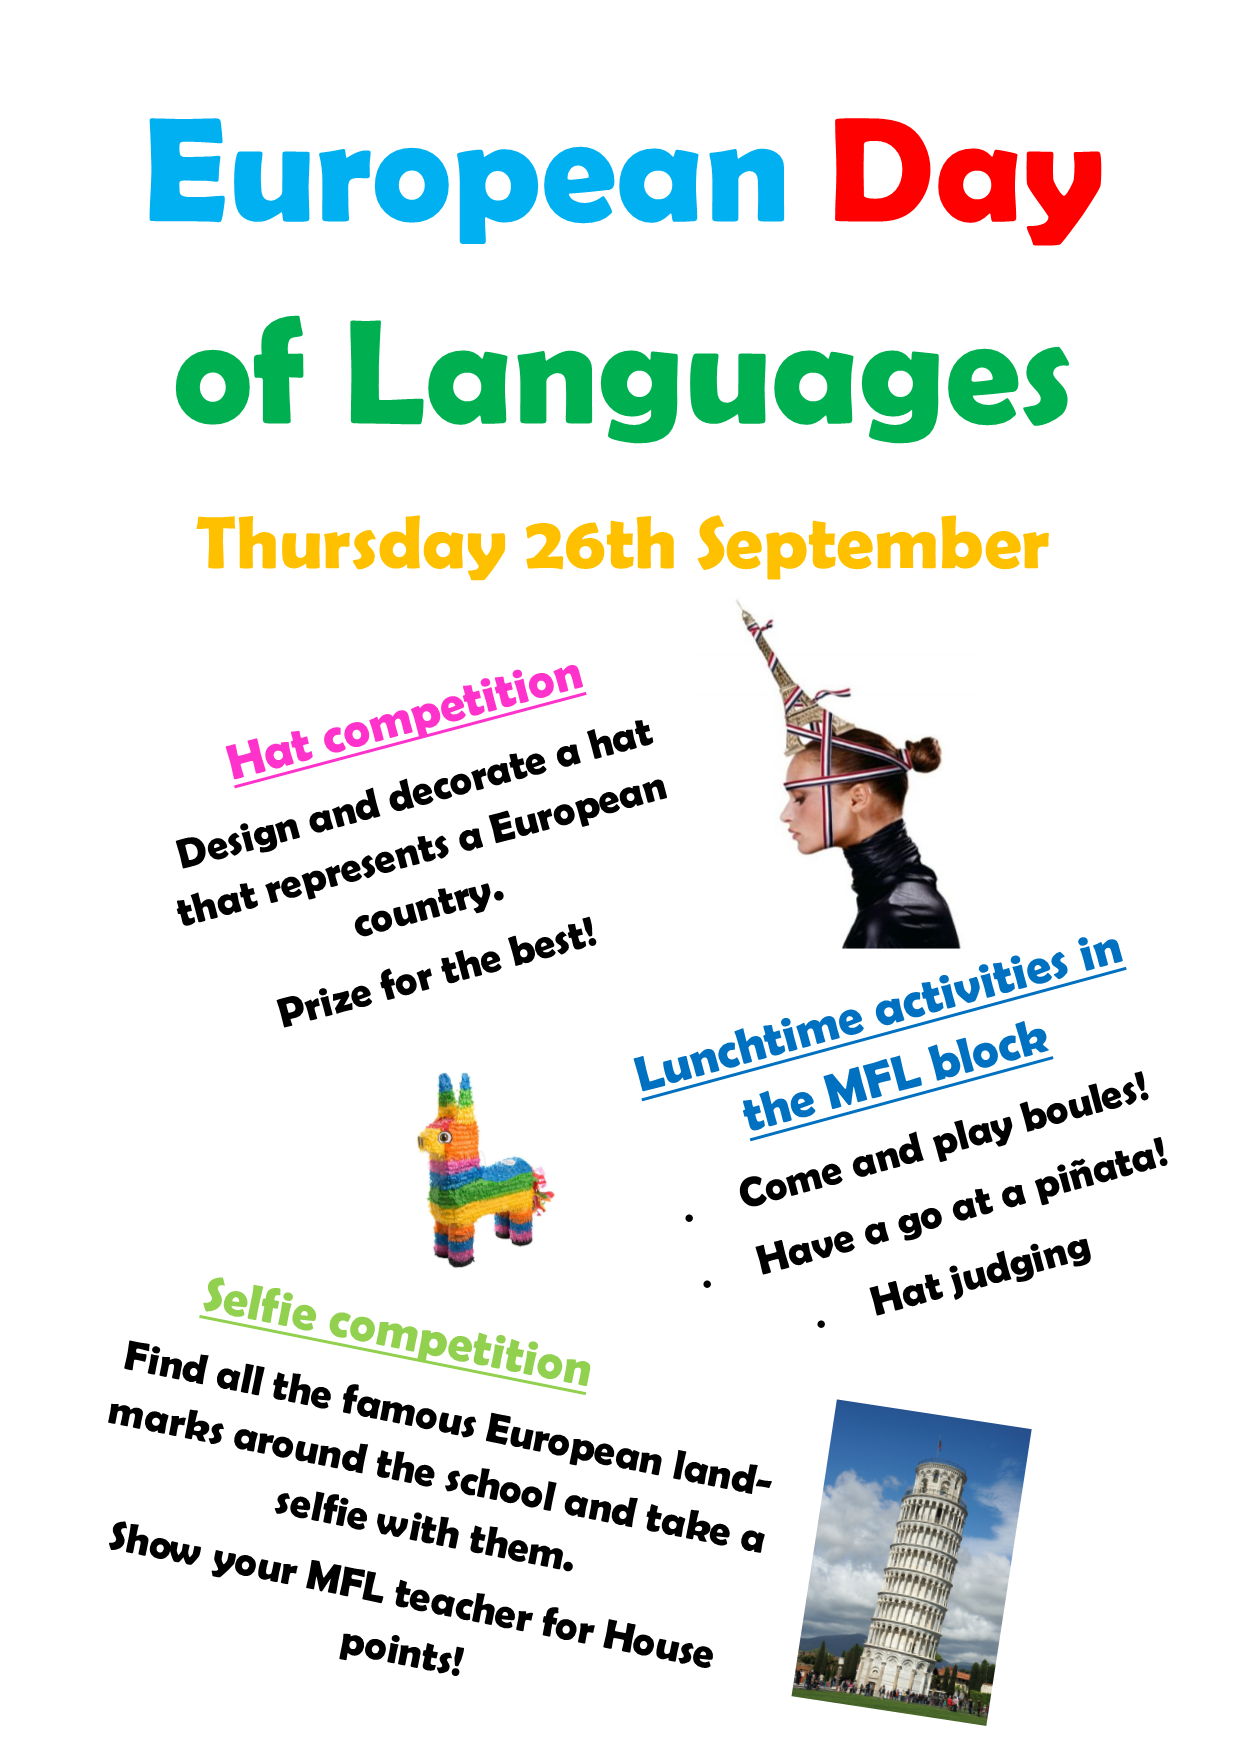 European Day of Languages, Thursday 26th September